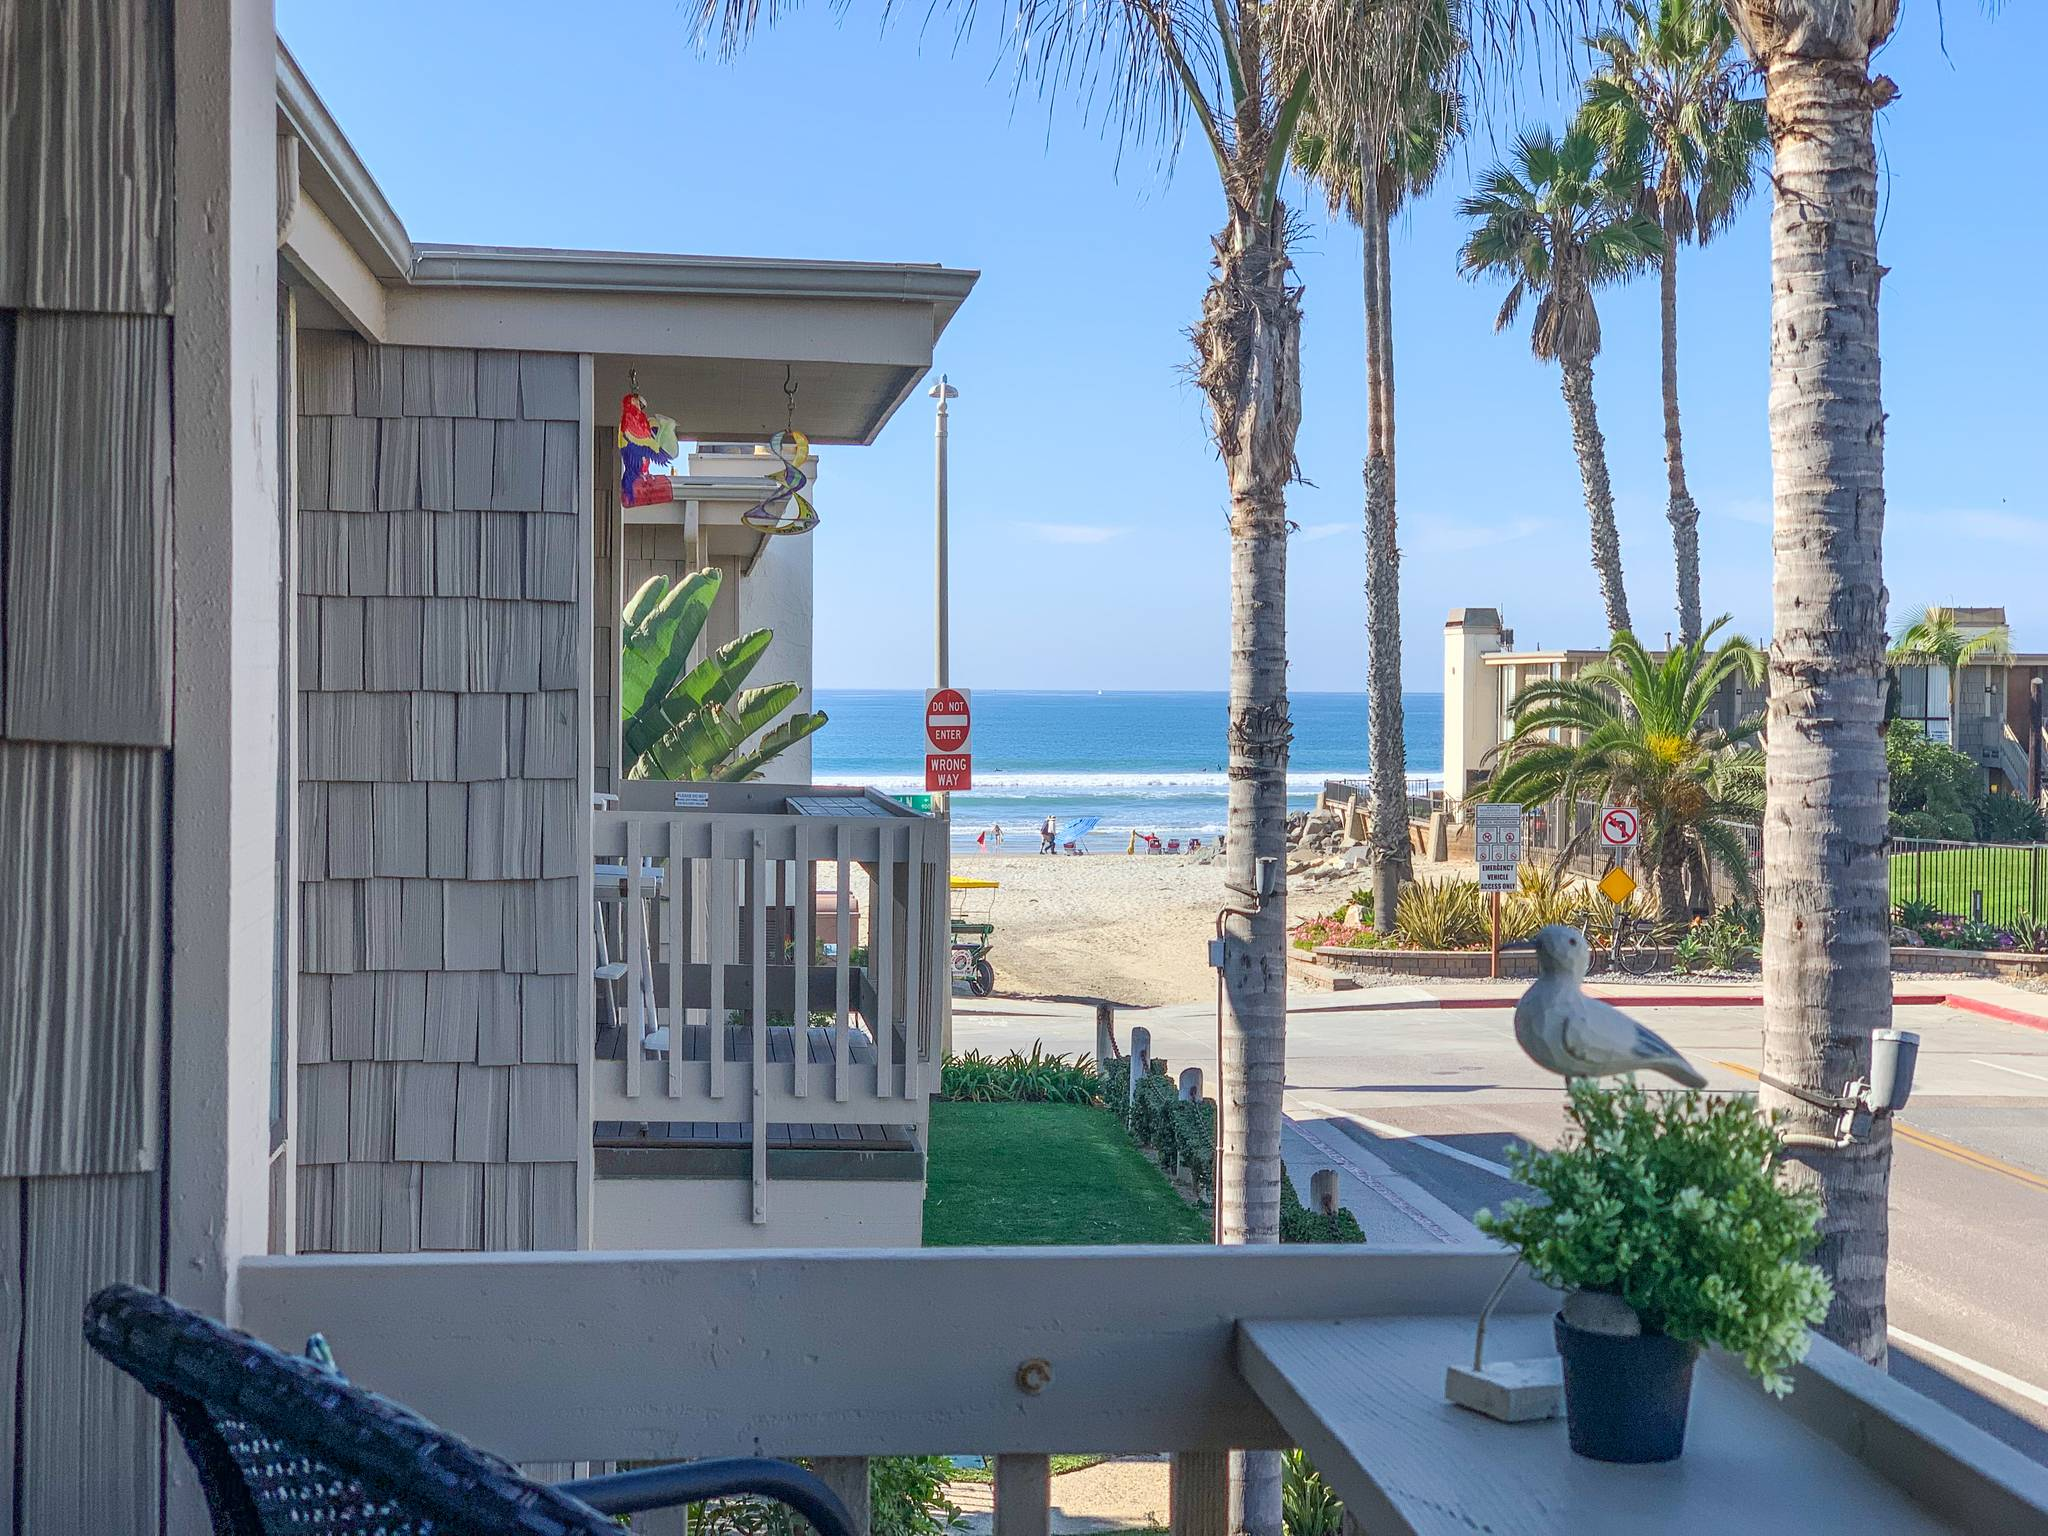 Pleasing A 16 Surfside Life Stay Coastal Vacation Rentals Download Free Architecture Designs Sospemadebymaigaardcom